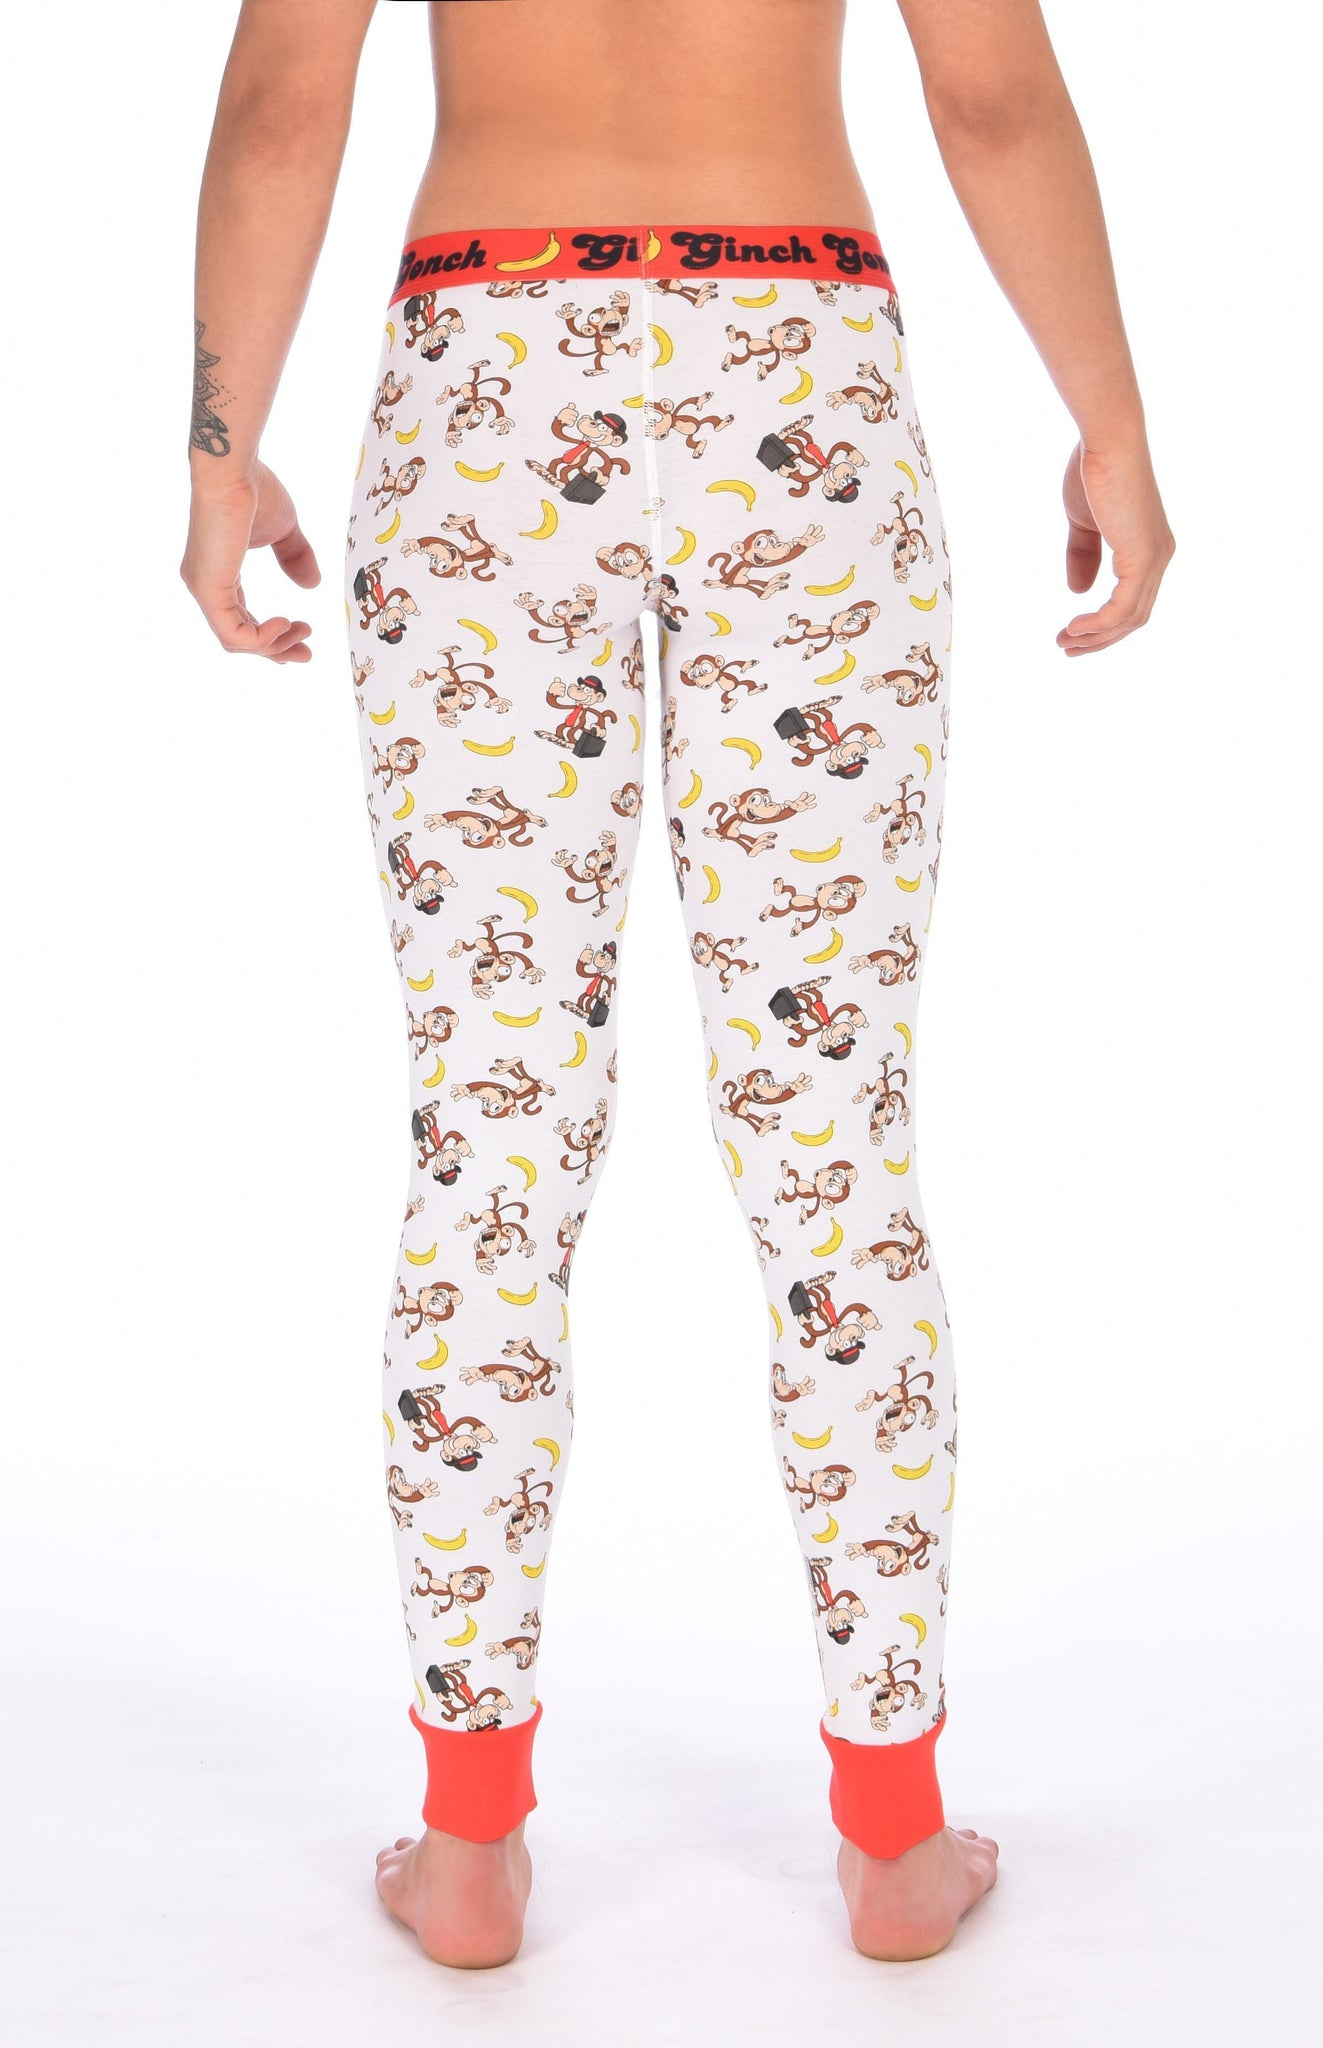 GG Ginch Gonch Gone Bananas leggings long johns men's long underwear white fabric with monkeys and bananas red trim and red printed waistband y front back